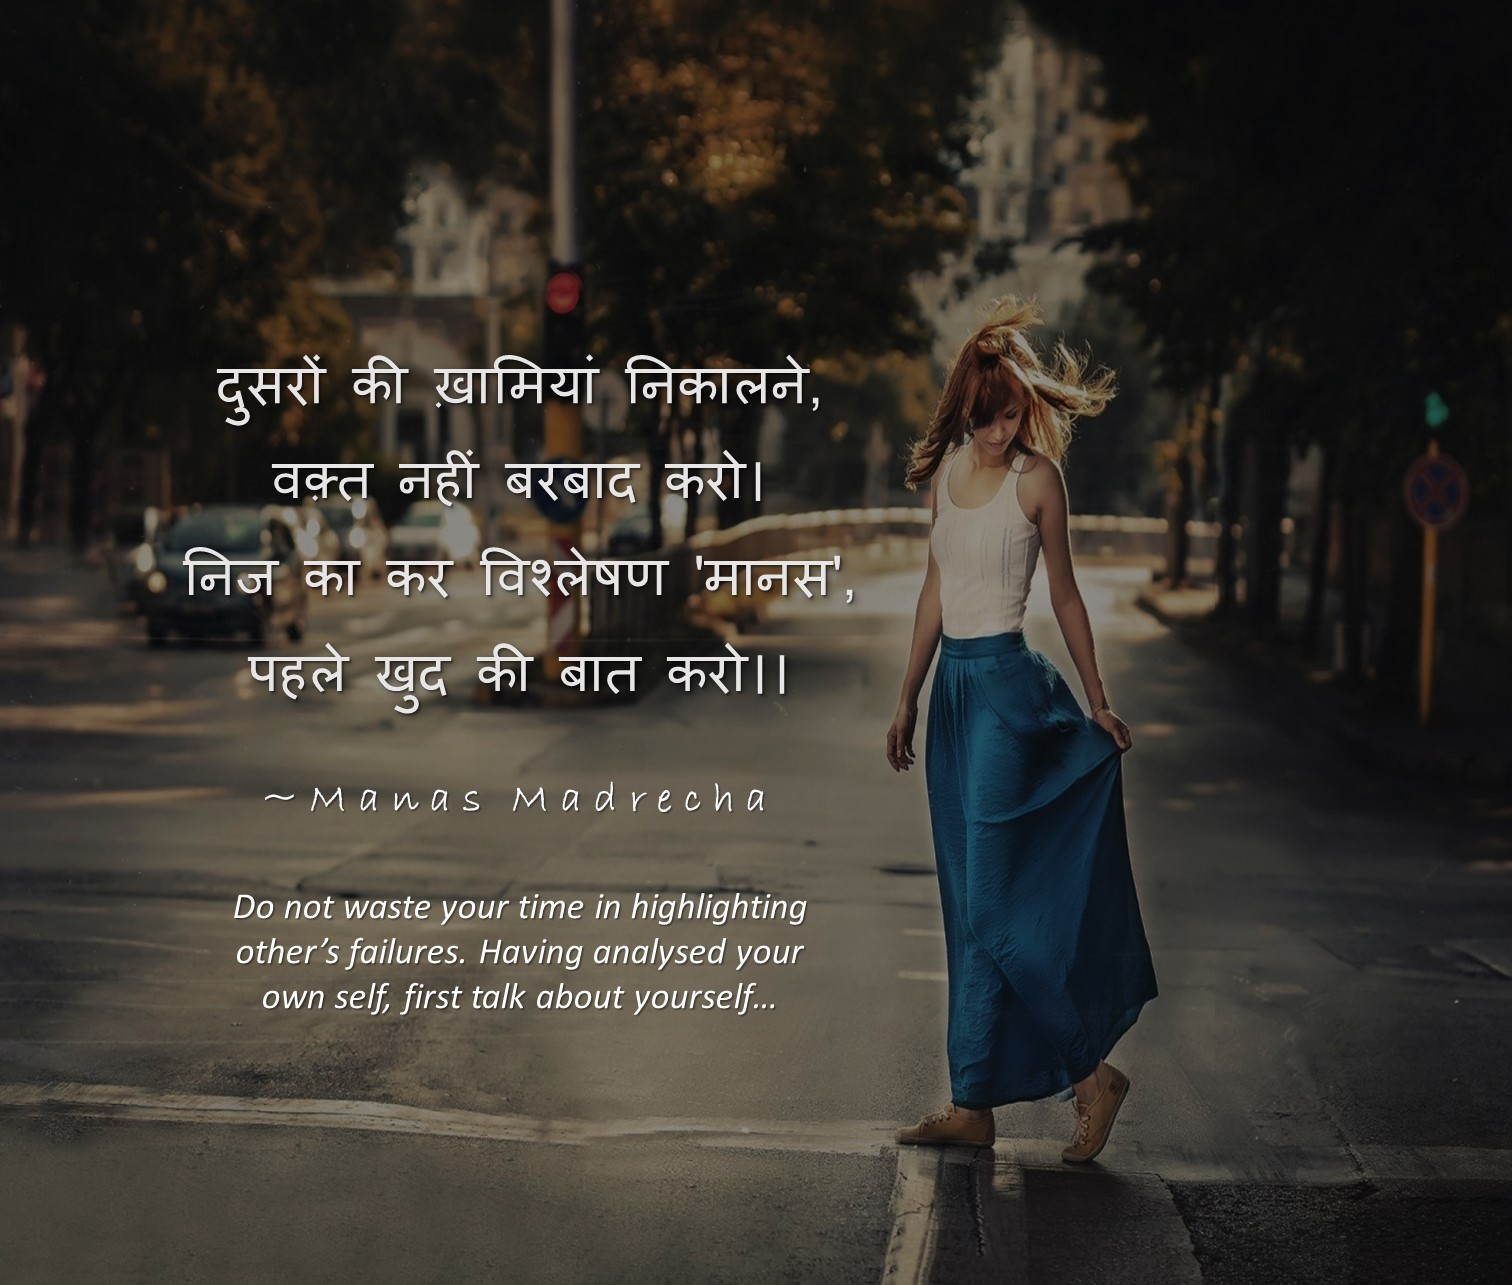 girl walking, alone girl on road, modern woman walking, modern girl, sad girl walking, happy girl walking, girl wearing skirt walking, Manas Madrecha, Manas Madrecha blog, simplifying universe, Hindi poem on self, hindi quotes, hindi shayari, inspirational poem, inspirational quotes, motivational quotes, first talk about yourself, pehle khud ki baat karo,